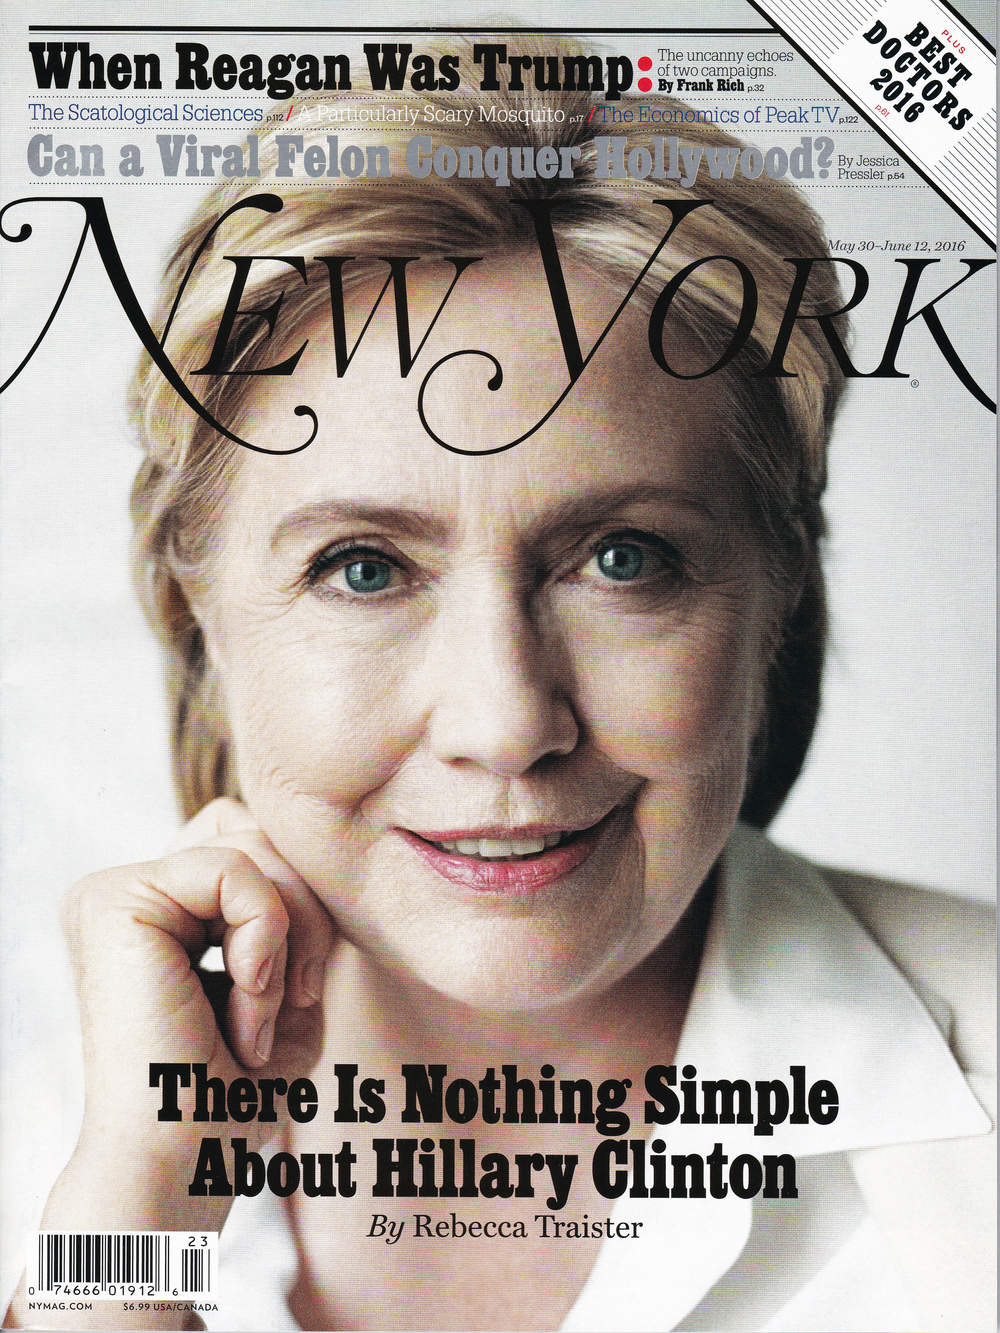 NY Magazine May 30_June 12 2016_Cover.2.jpg